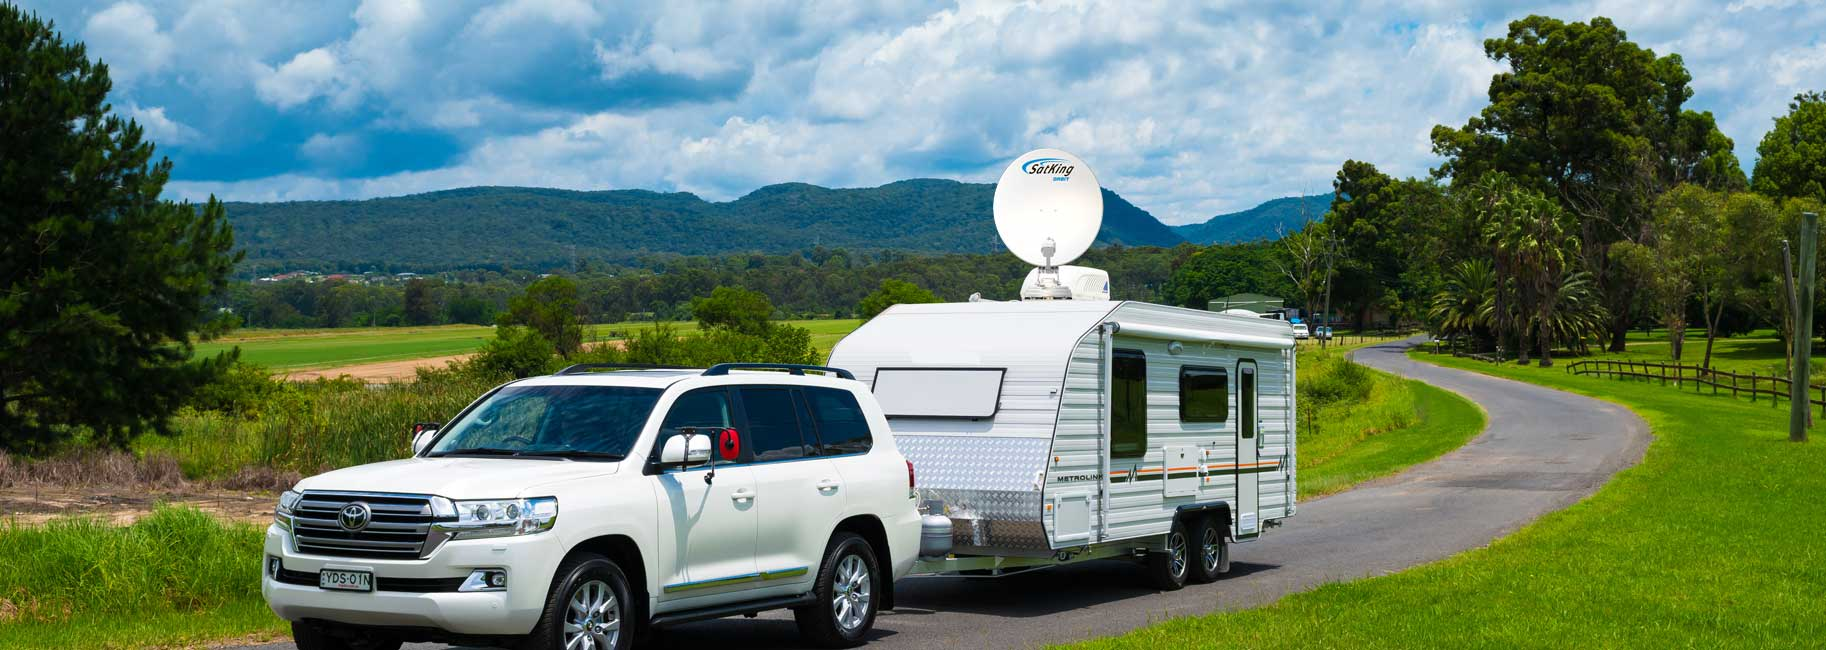 TV Satellite Dish for Caravan